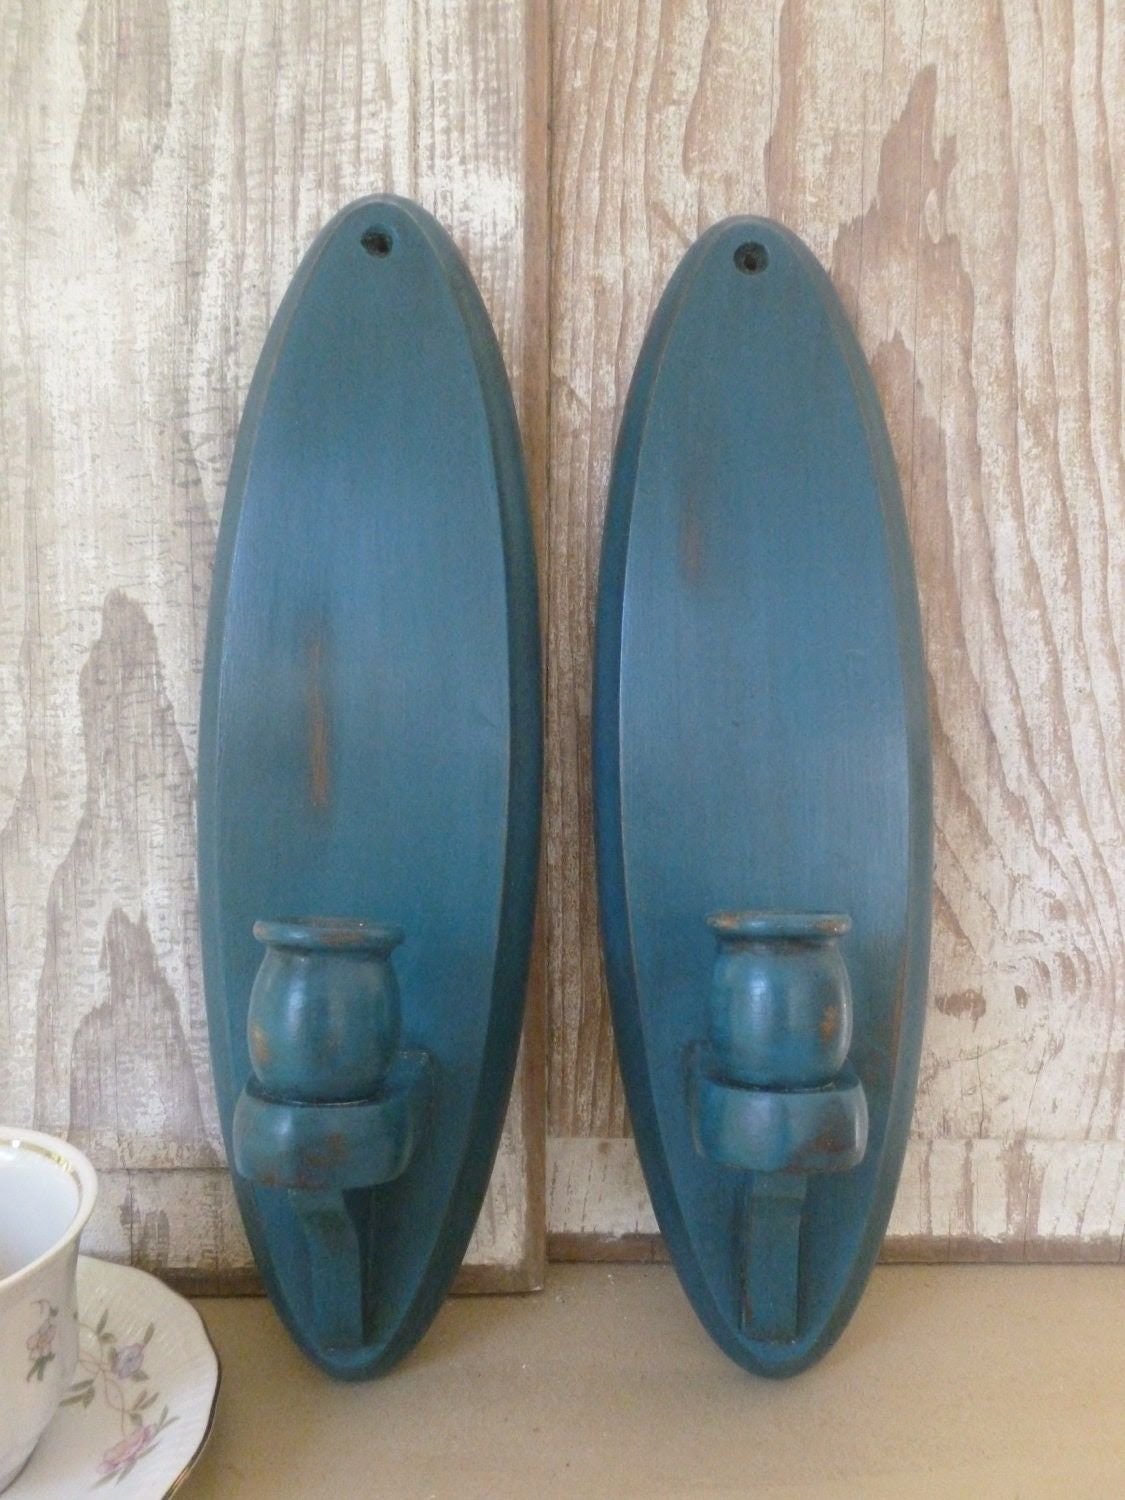 Wooden Wall Sconces Candle Holders Painted Teal by beckibees